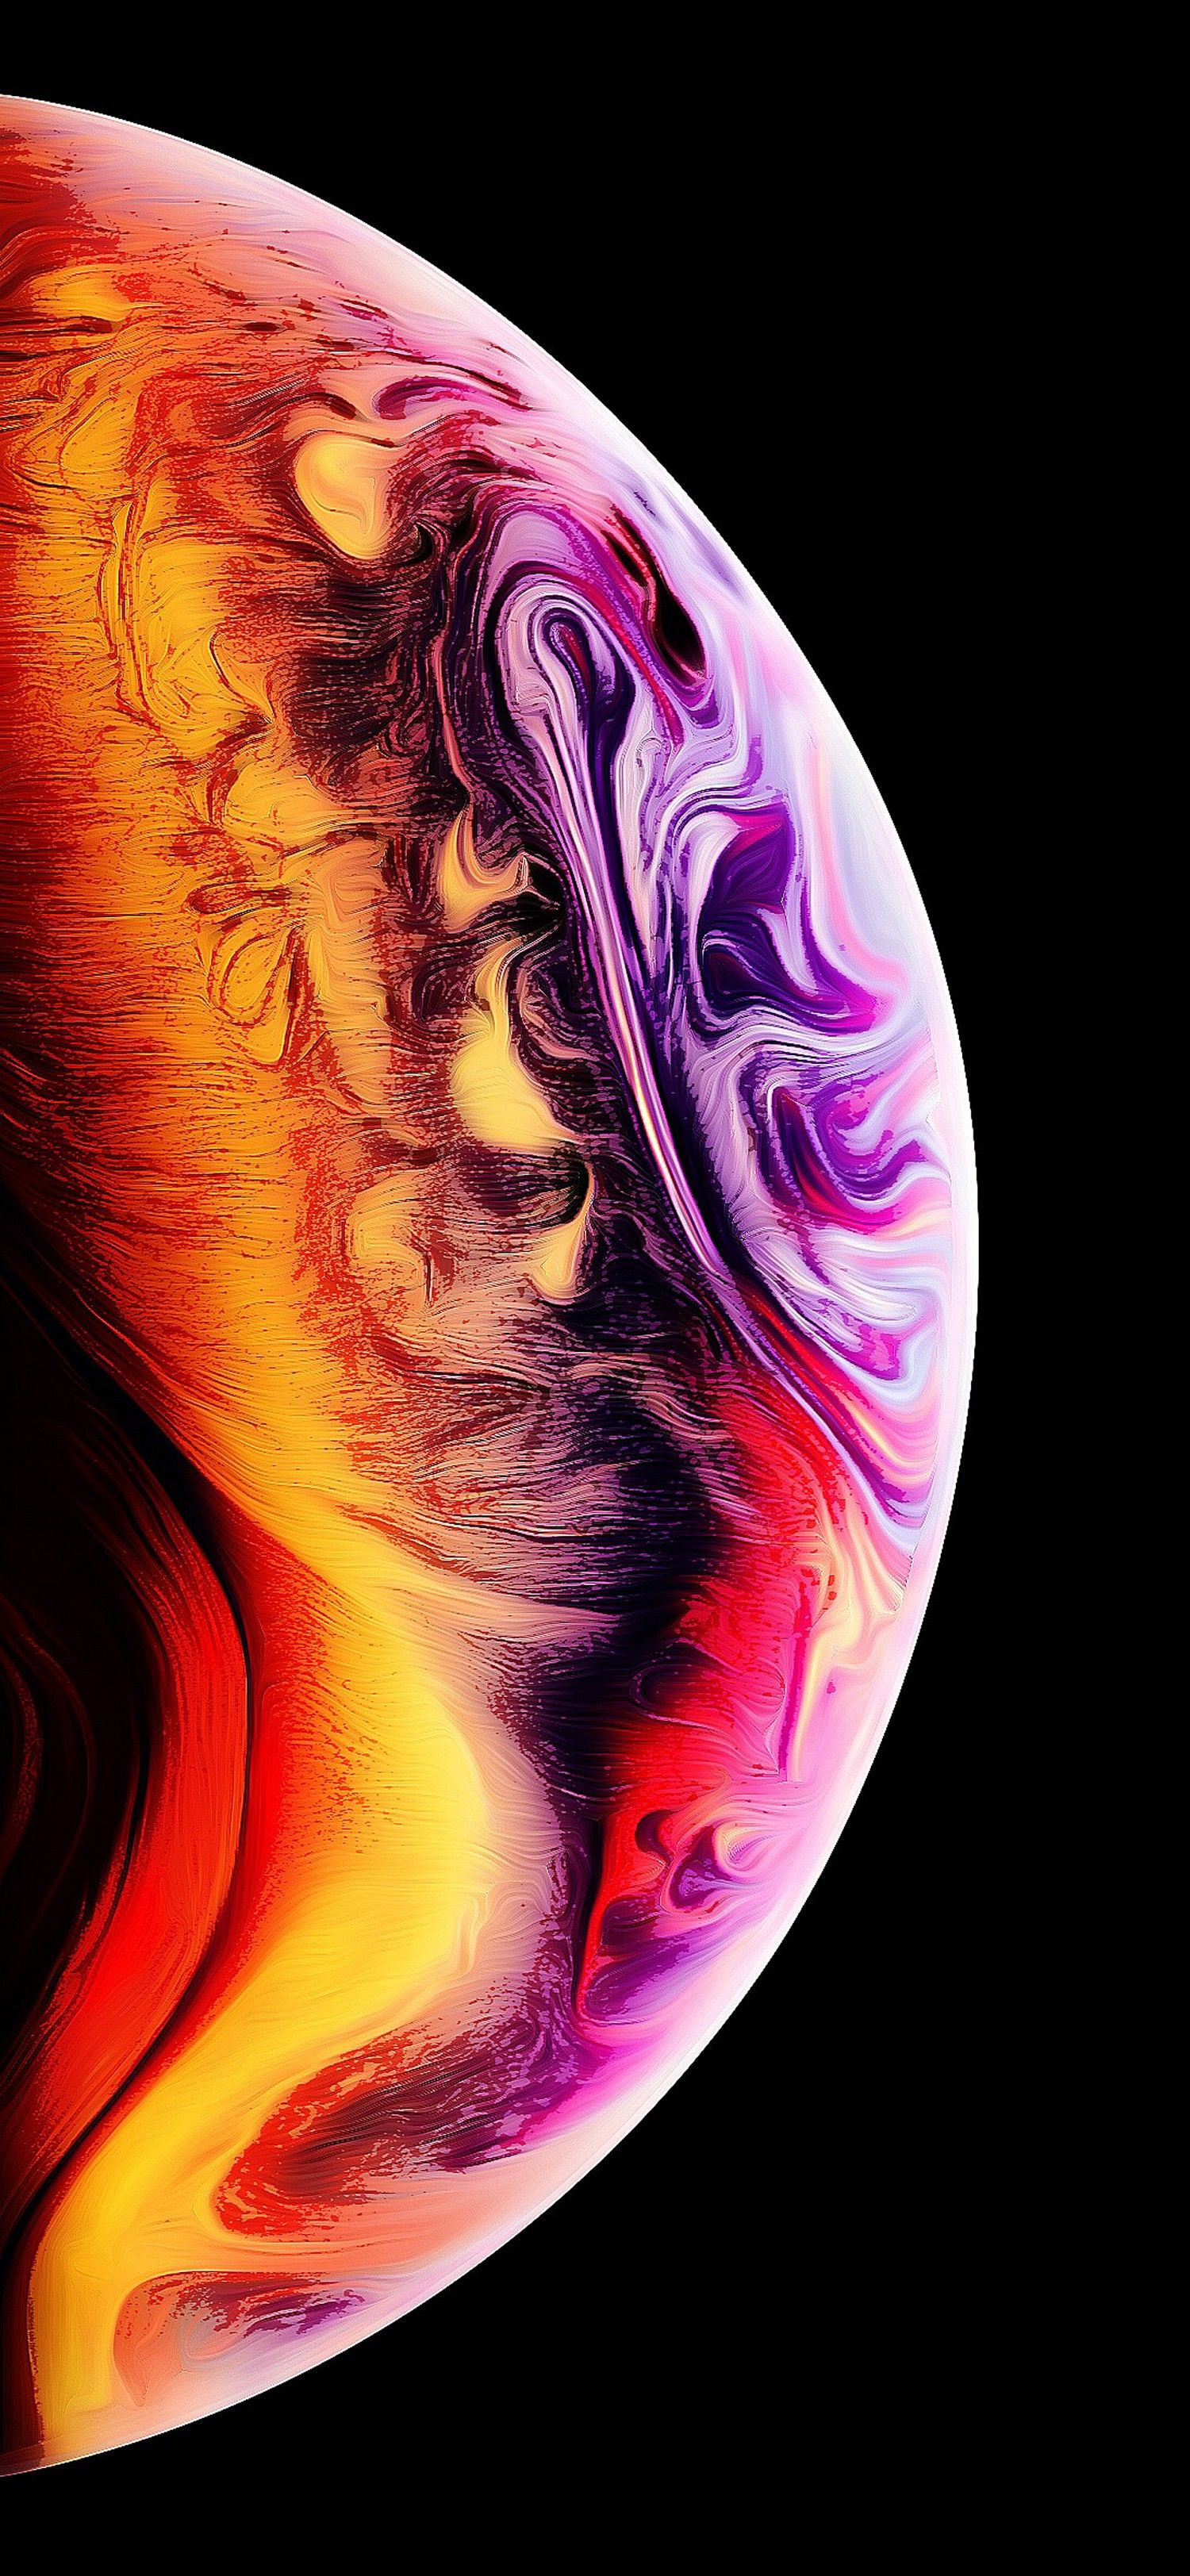 Apple Inc By Iphone Xs Apple Wallpaper Iphone 4k Wallpaper Iphone Iphone Wallpaper Ios 4k ultra wallpaper iphone xs max